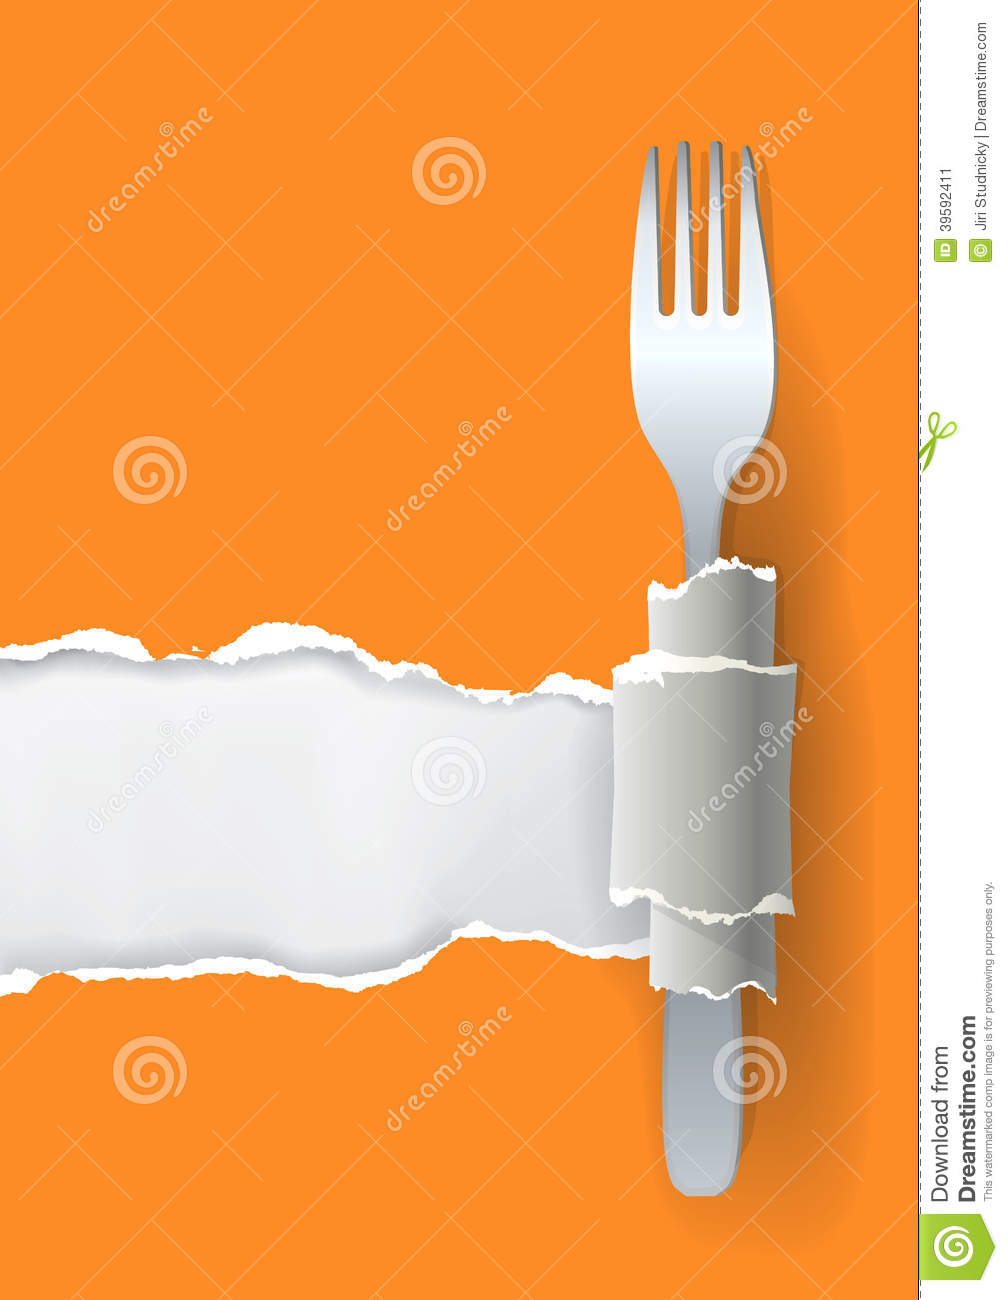 ... for your image or text, with fork. Concept for restaurant design